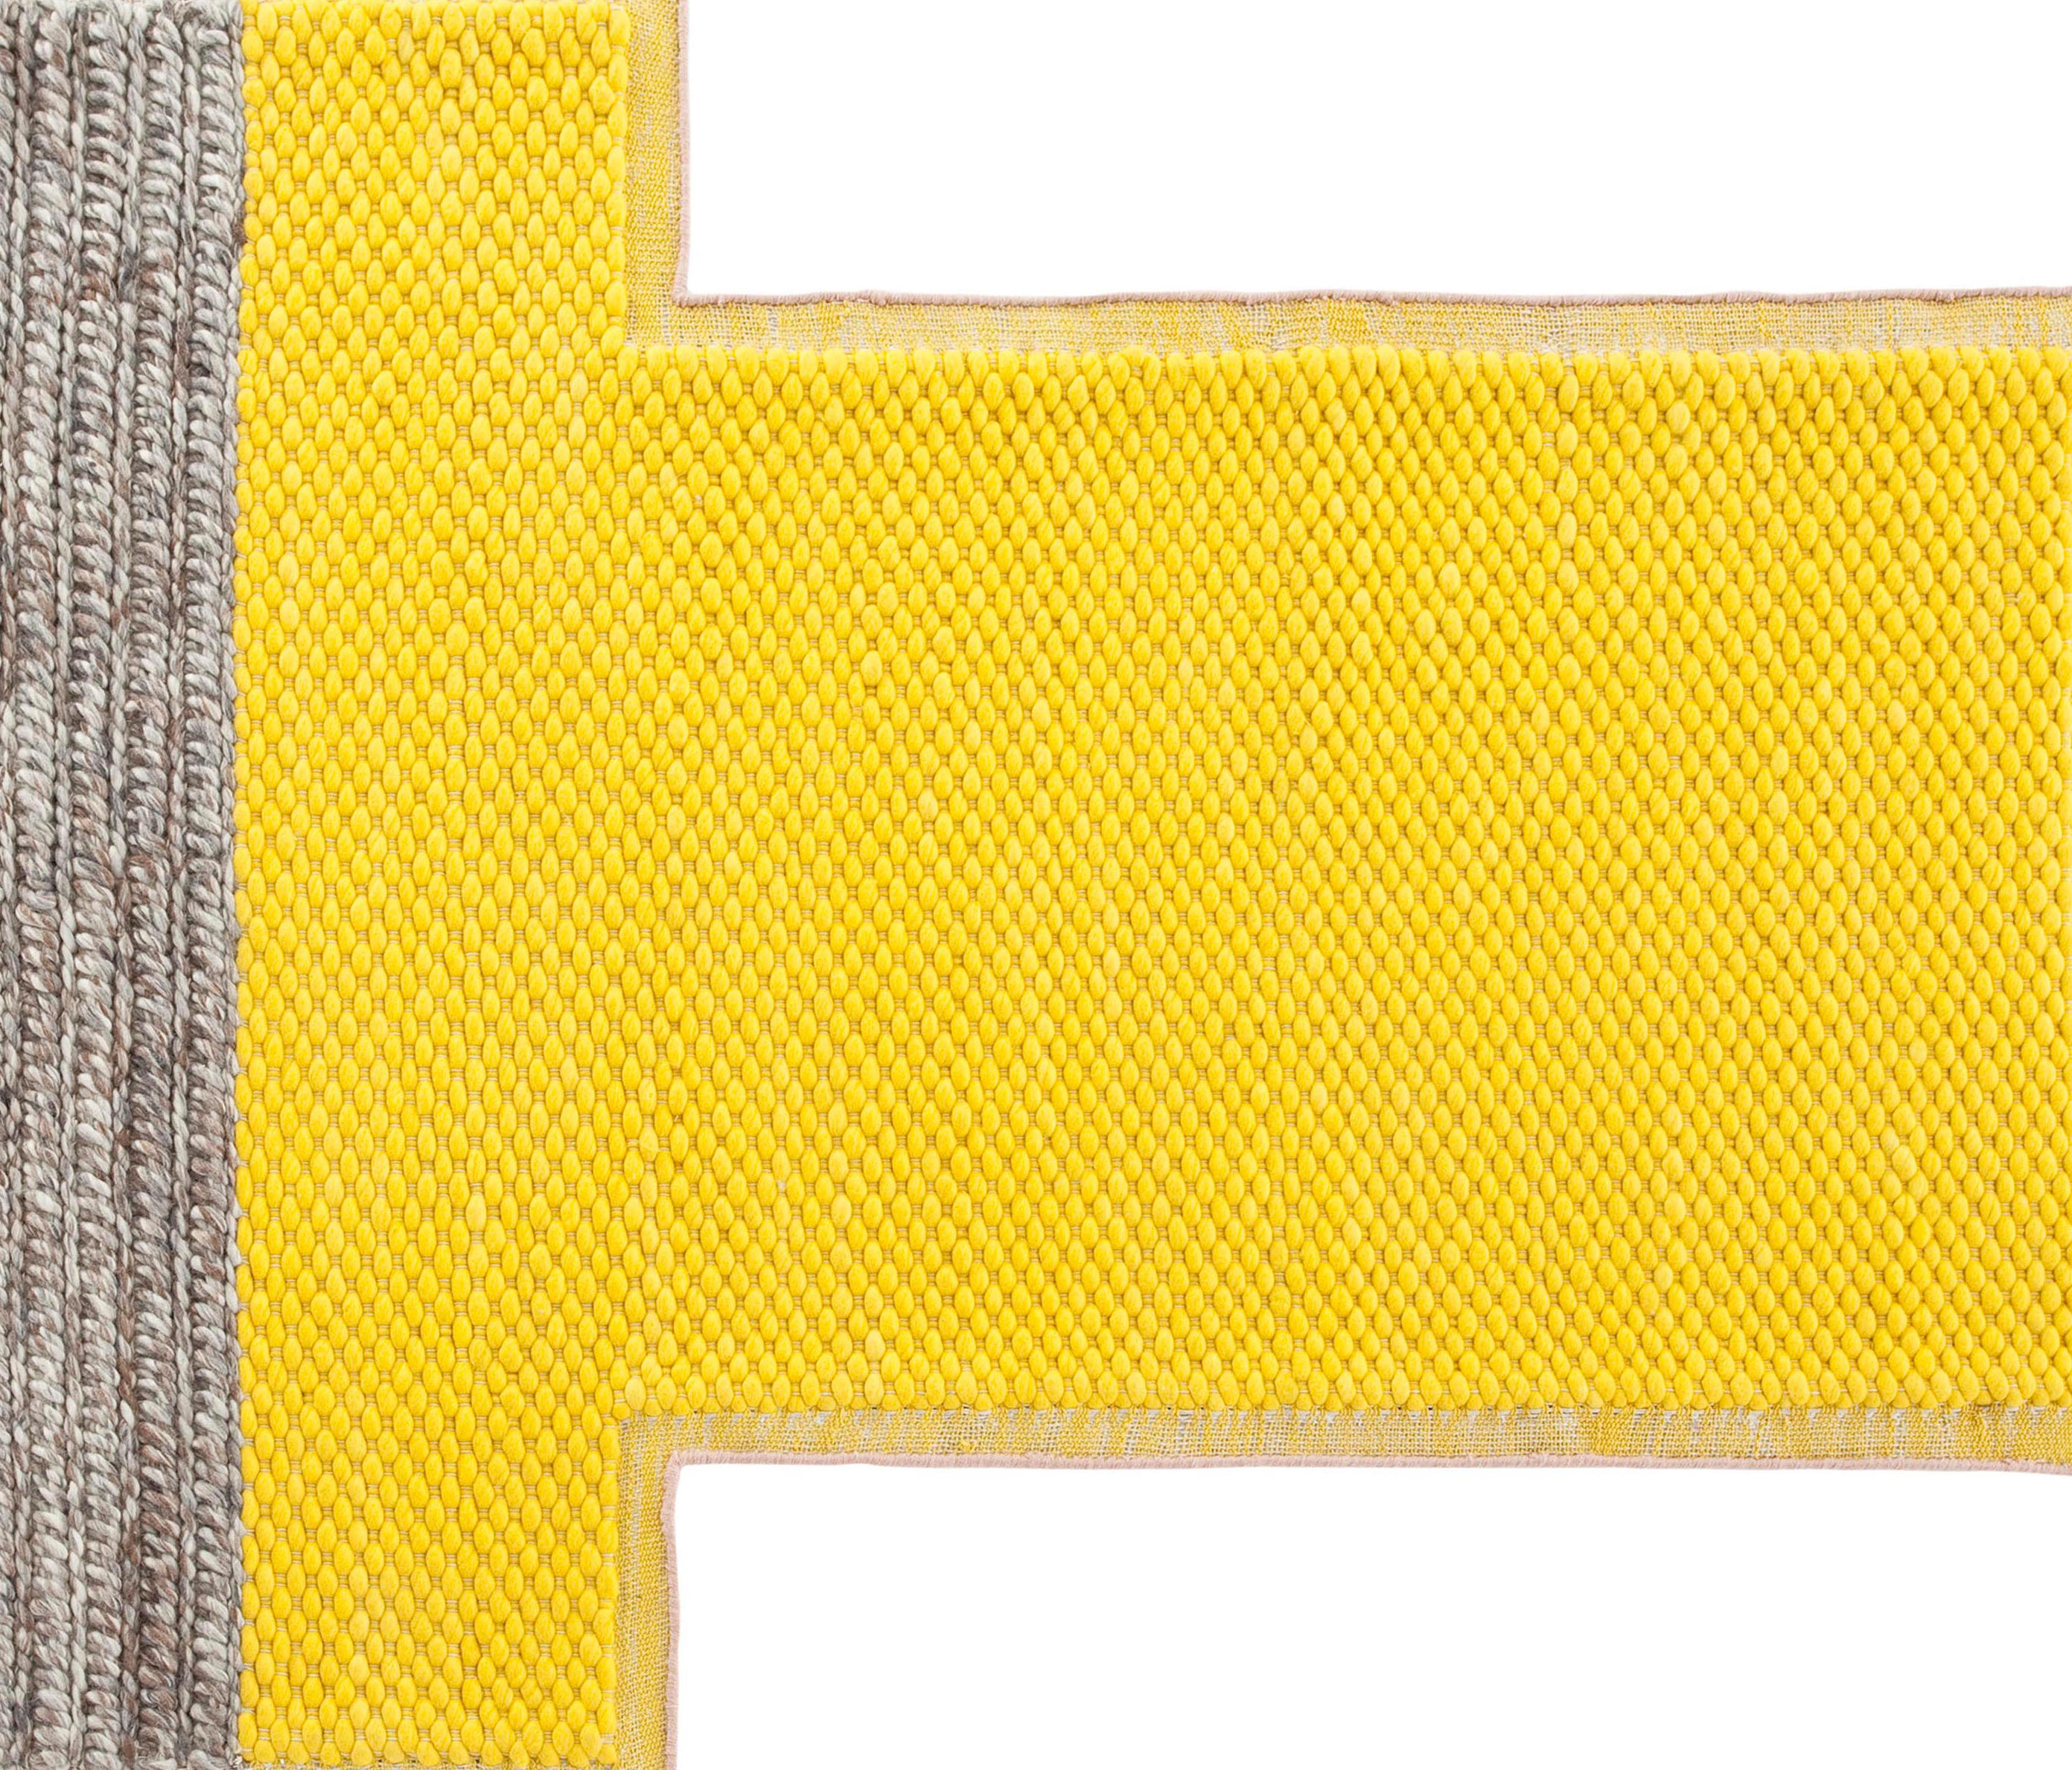 MANGAS SPACE RUG PLAIT YELLOW 1 - Rugs From GAN